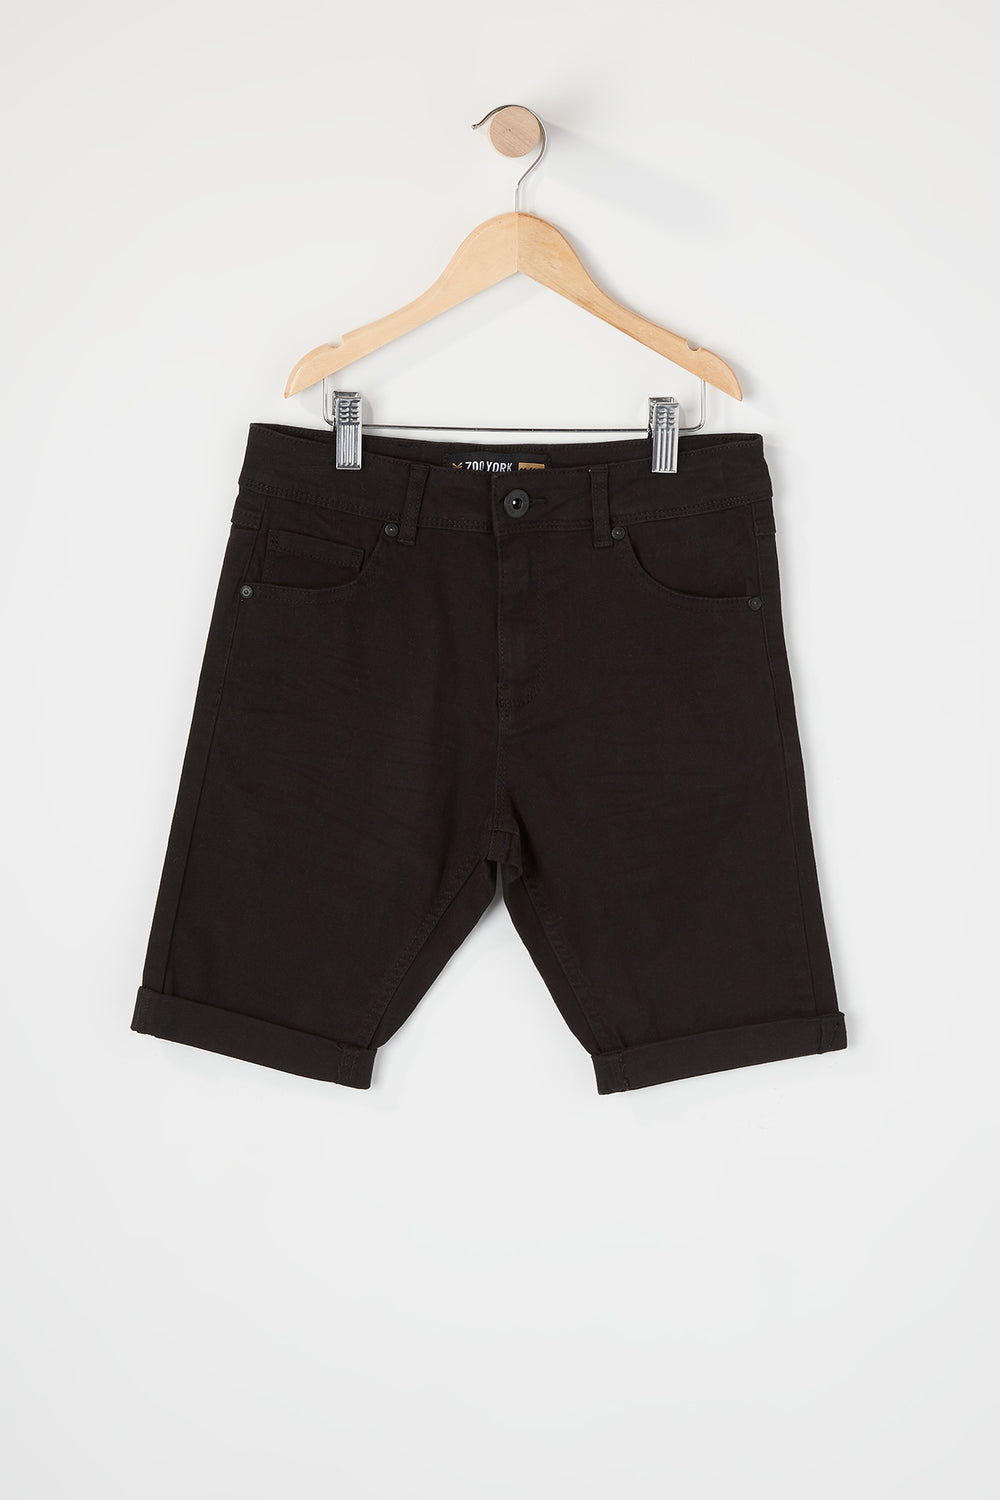 Zoo York Boys Solid Shorts Black